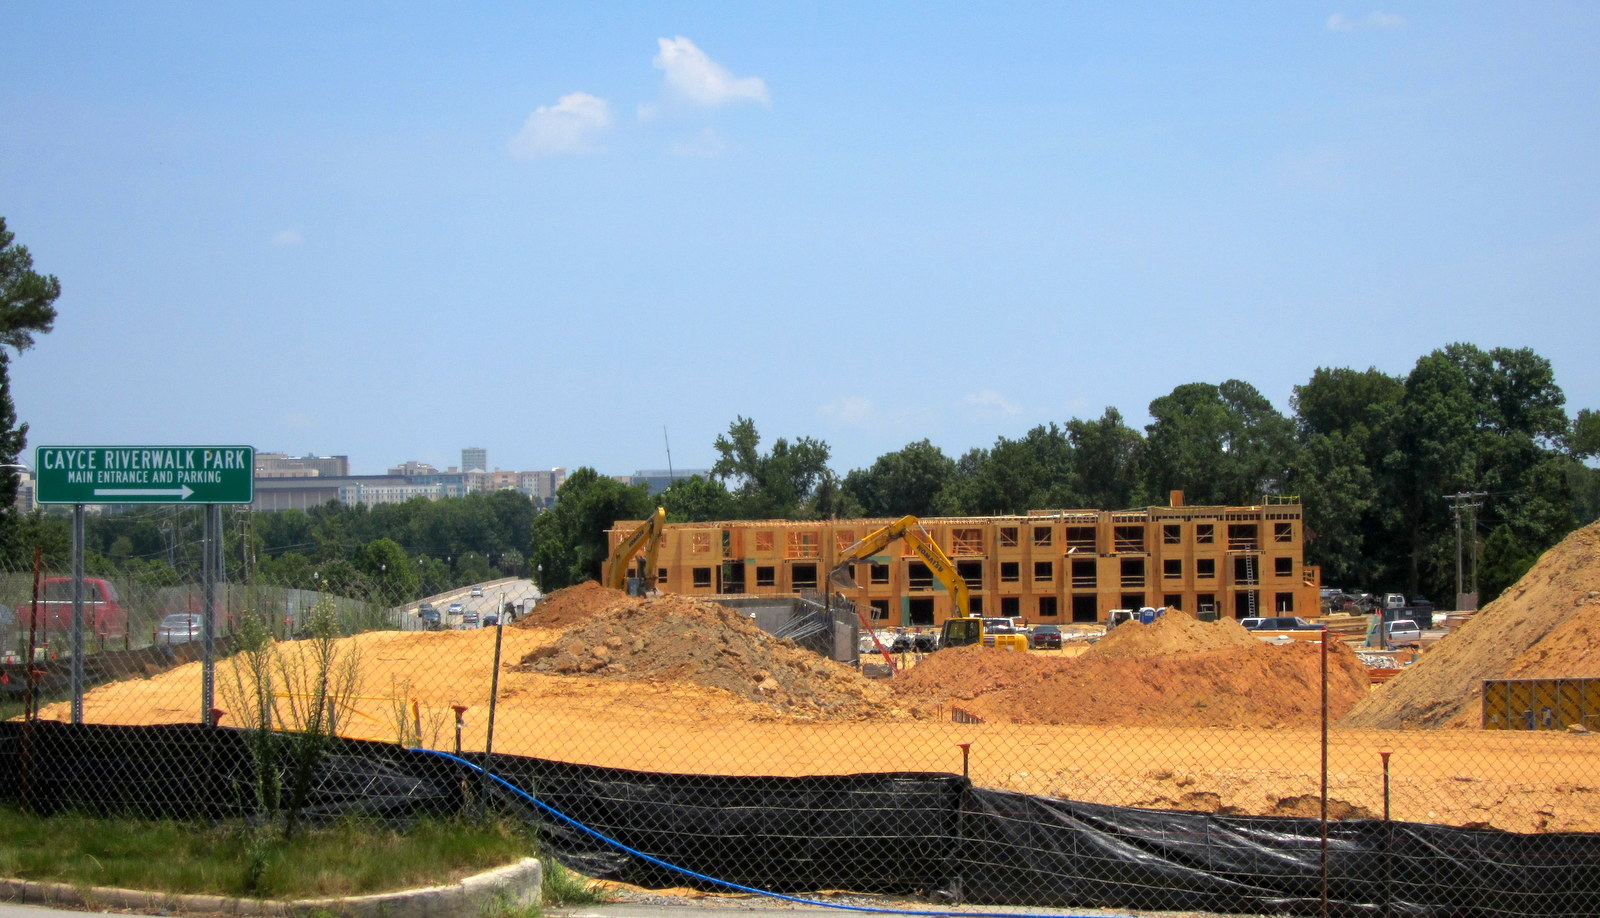 Luxury apartment construction abounds in Cayce and West